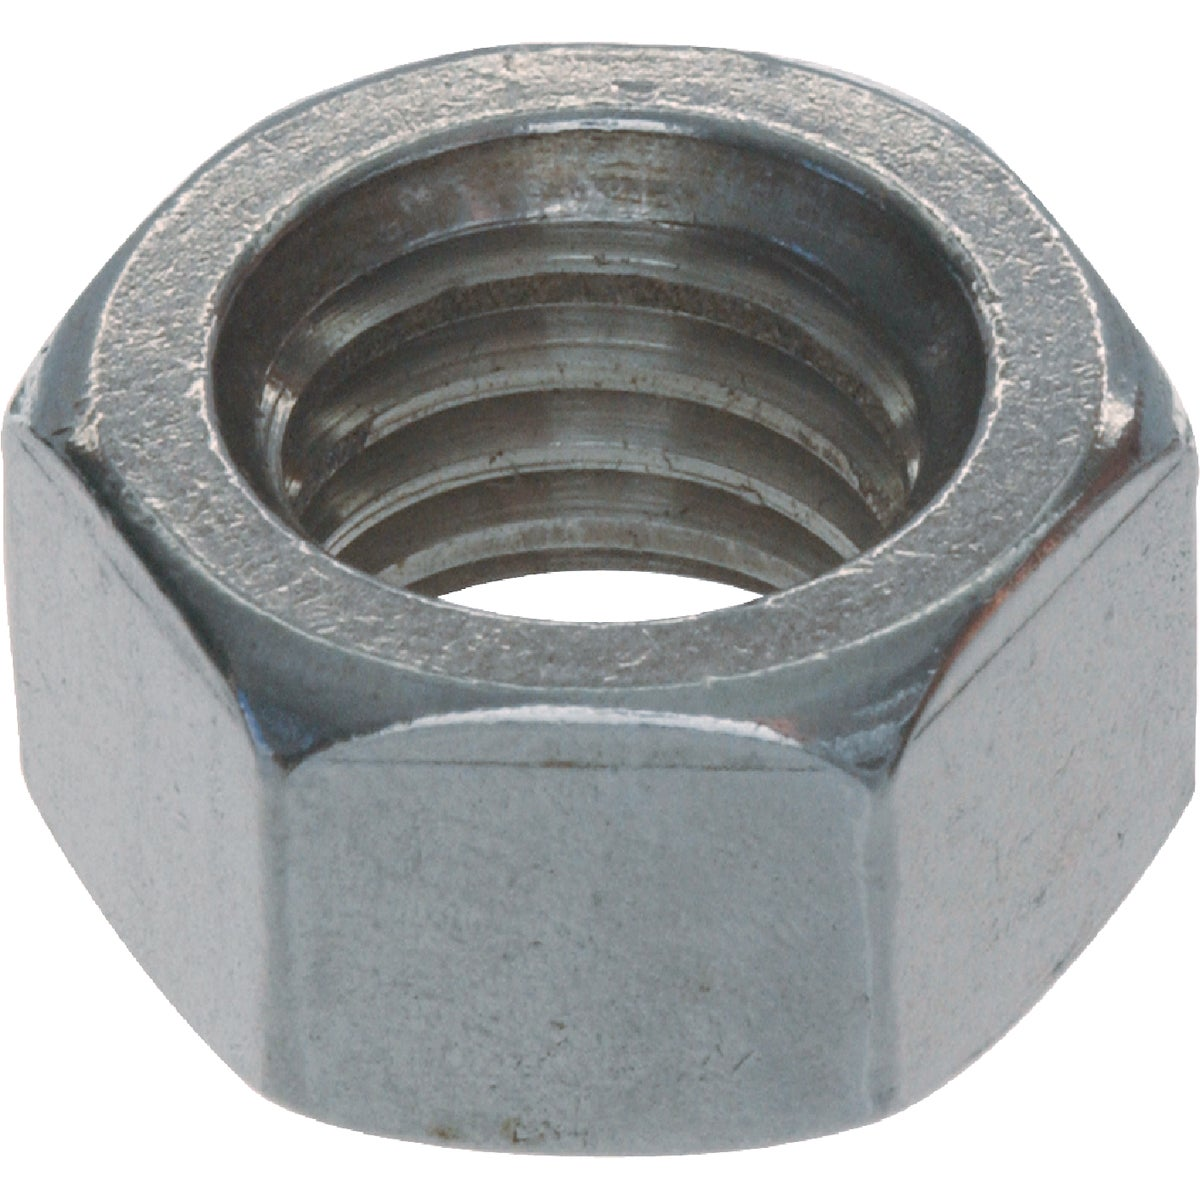 1/4-20 SS HEX NUT - 829300 by Hillman Fastener